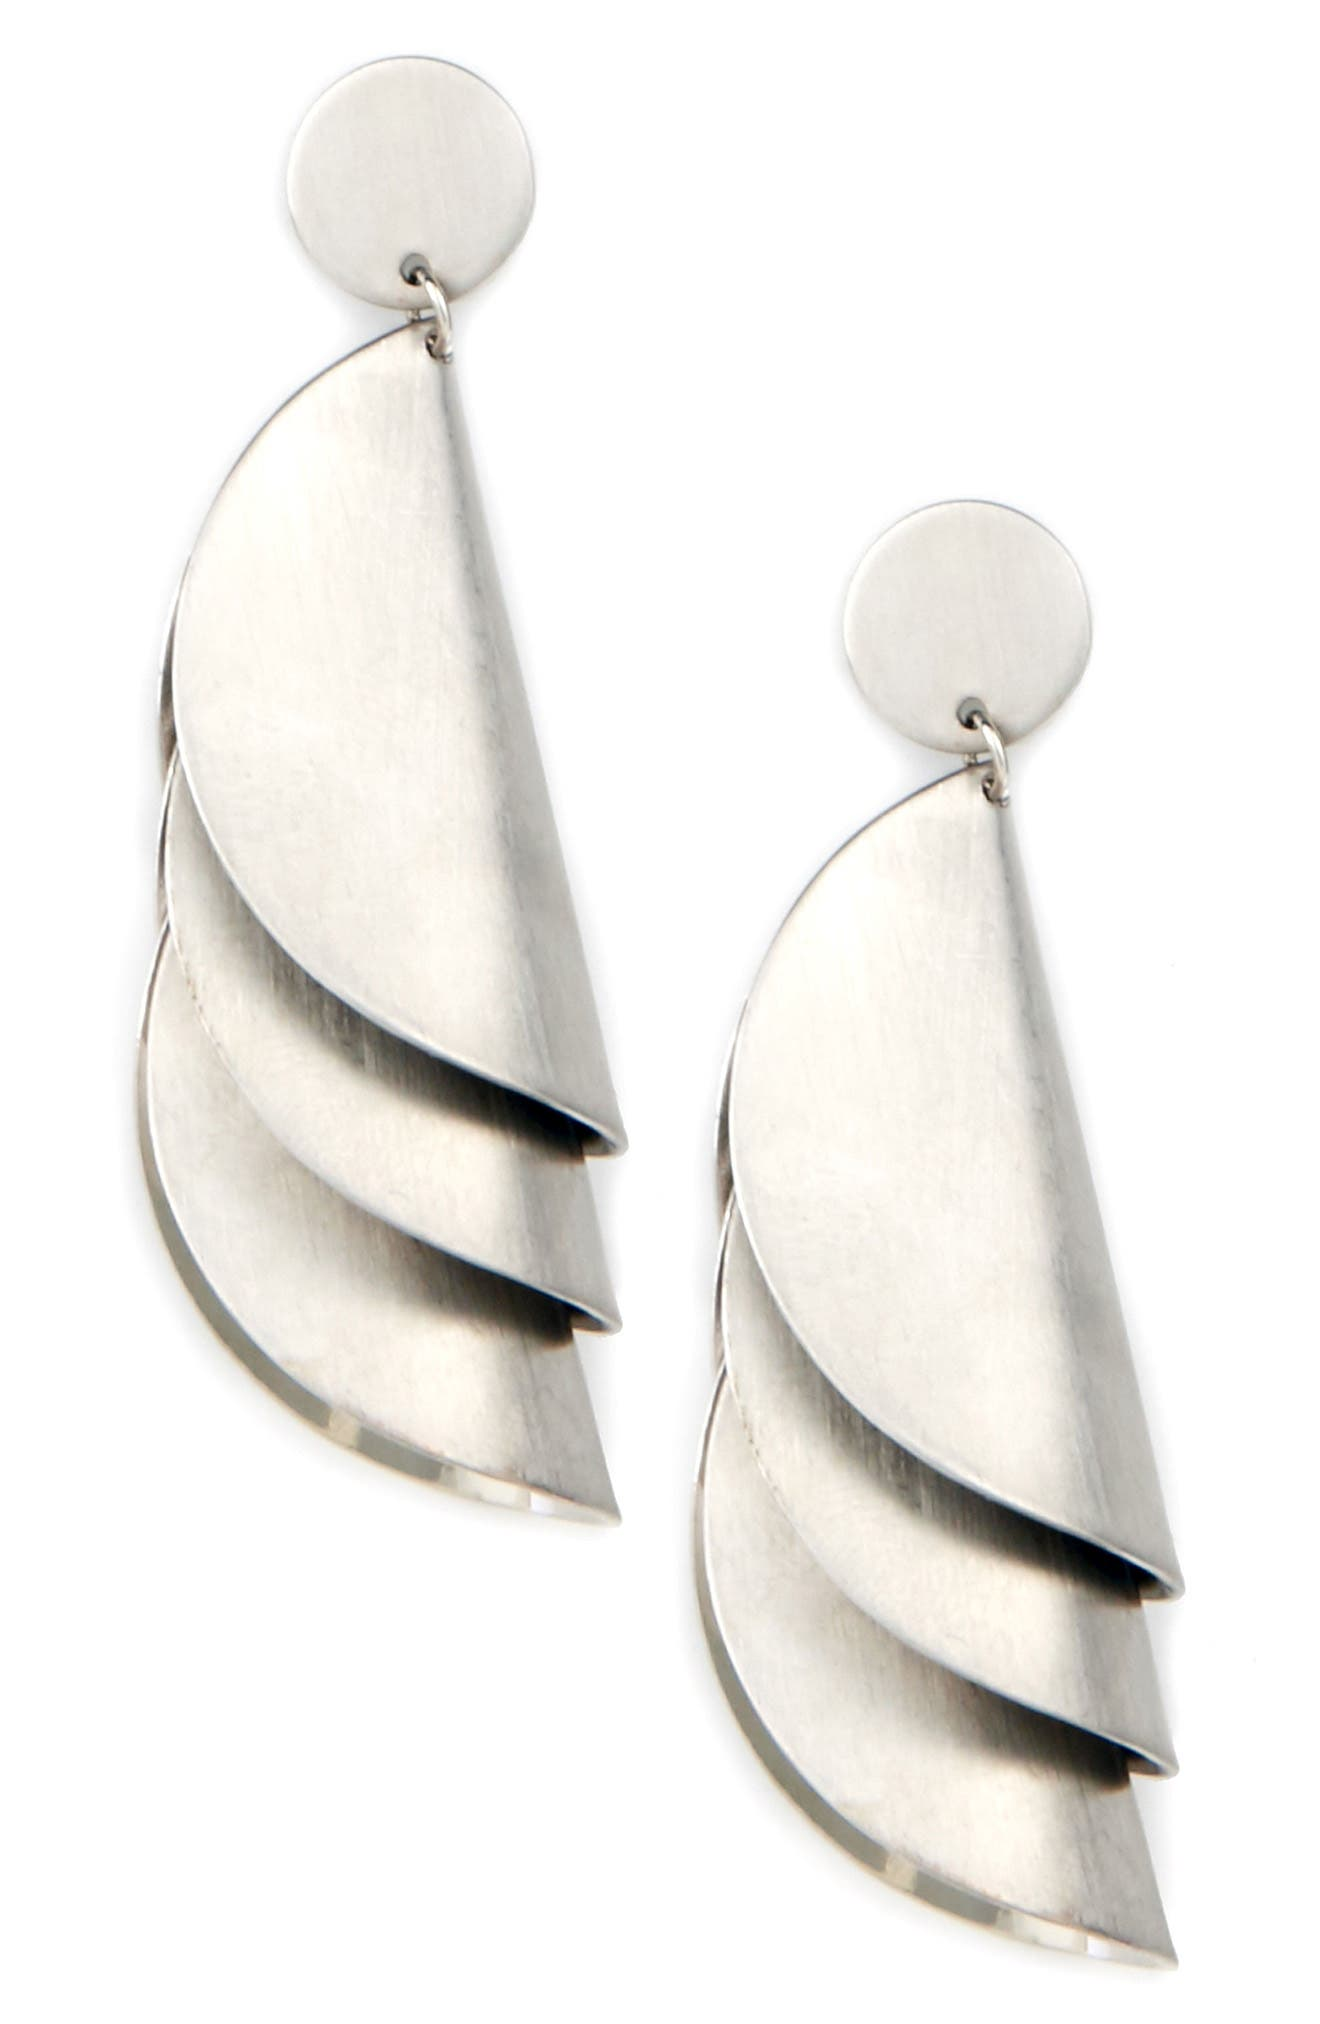 Fossil Cove Statement Earrings,                         Main,                         color, 040